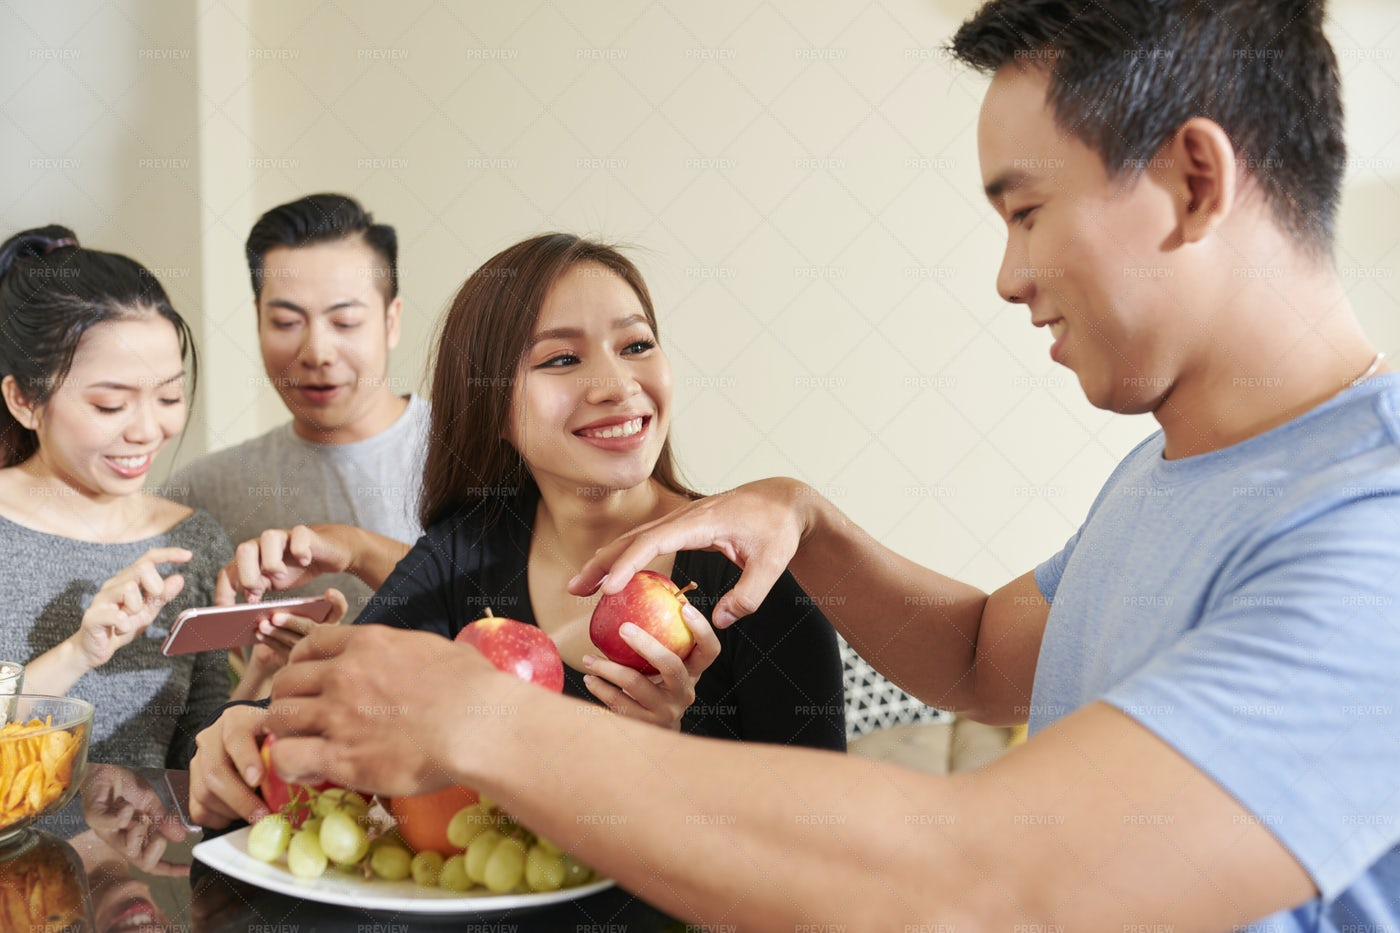 Young People Eating Fruits At Party: Stock Photos